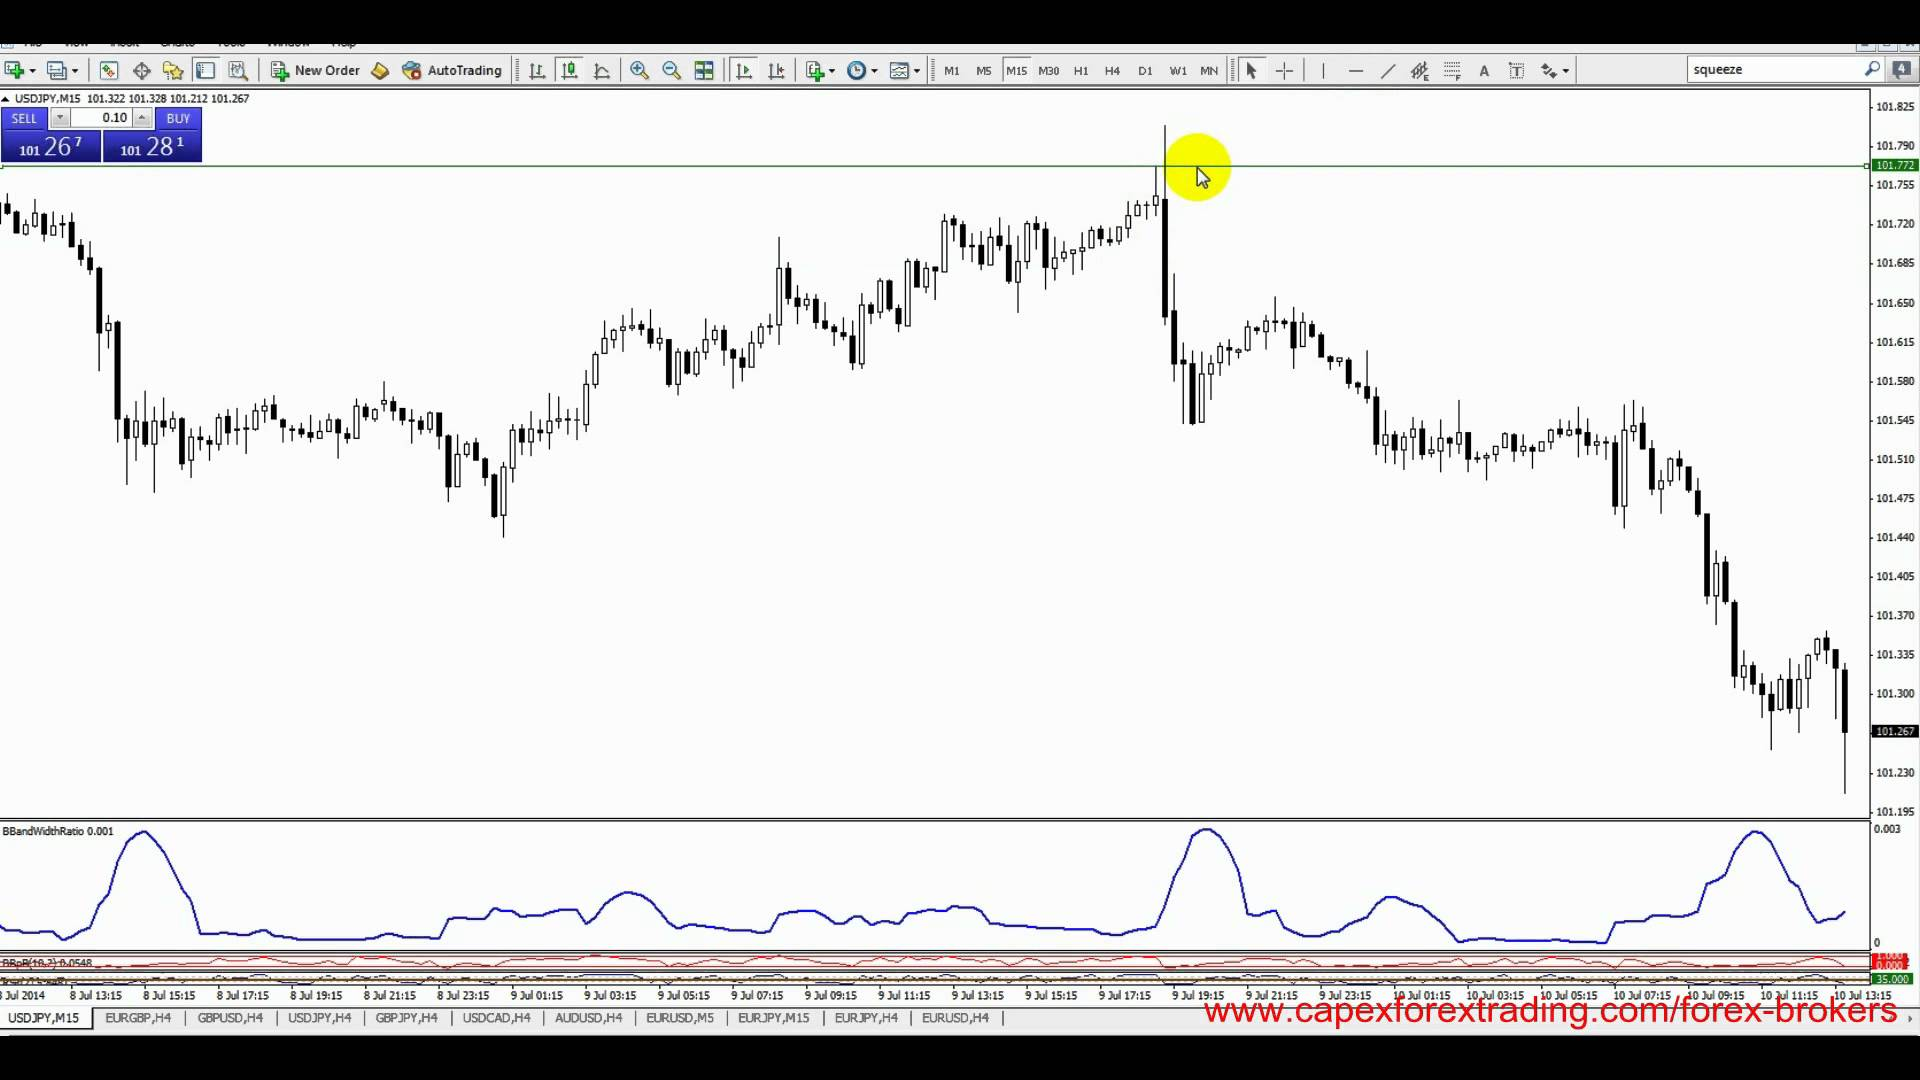 Difference between fixed spreads and variable spreads